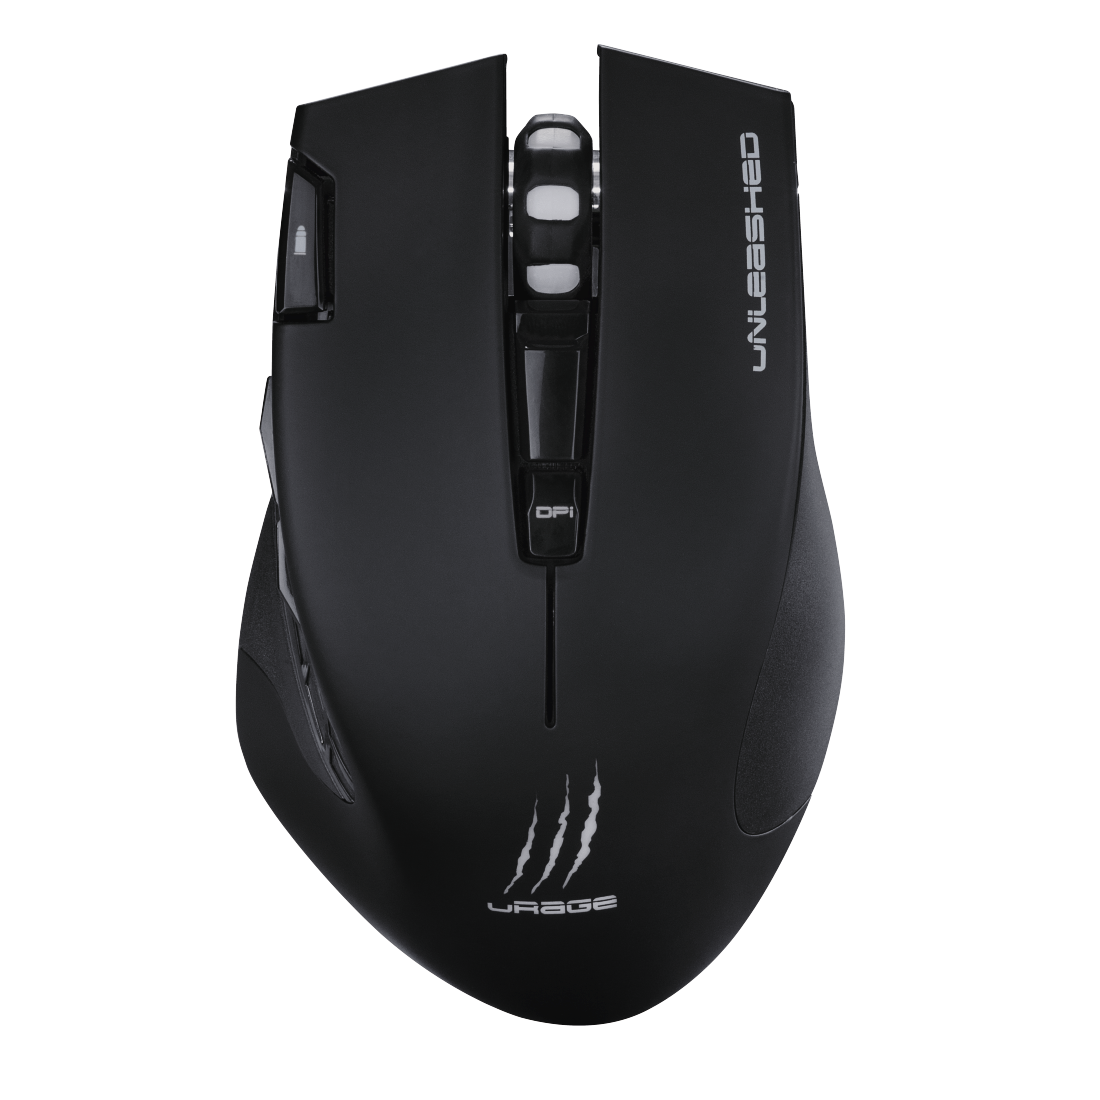 "abx2 Druckfähige Abbildung 2 - uRage, Wireless Gaming-Maus ""uRage Unleashed"""